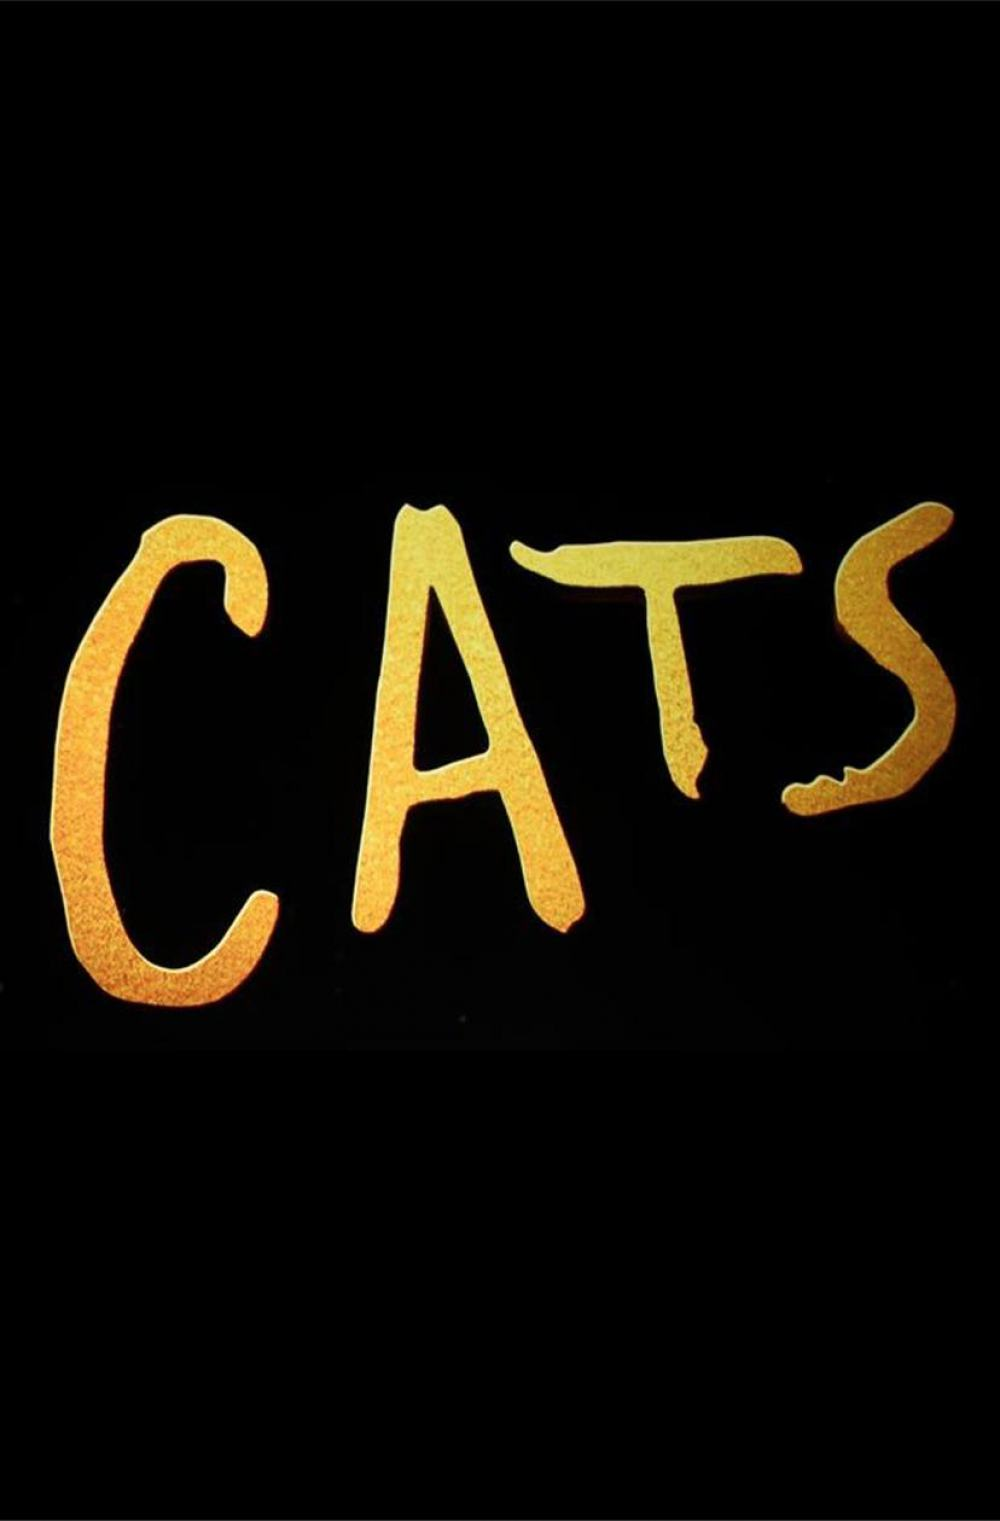 Cats Poster #1